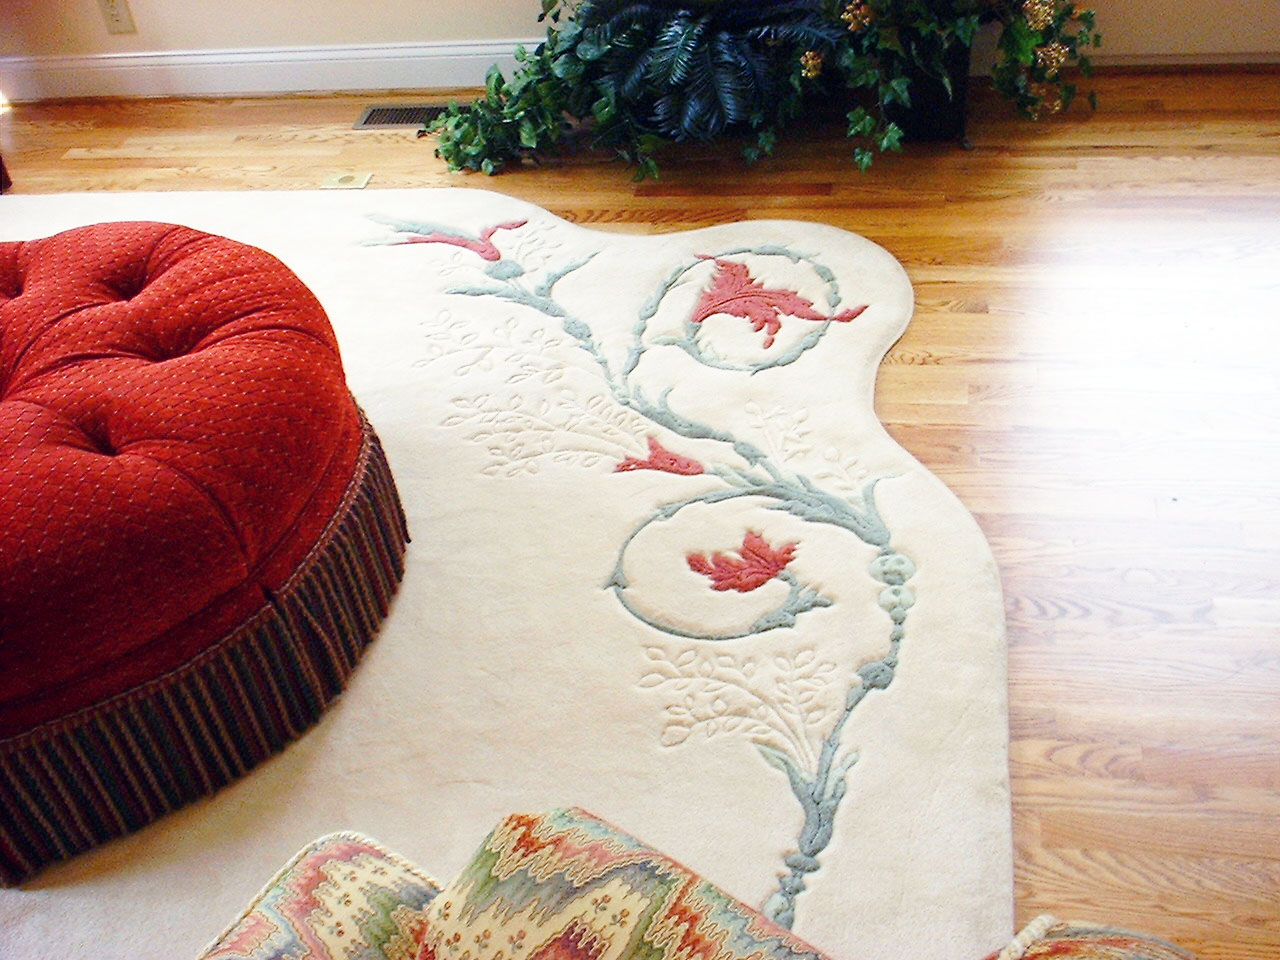 Custom rug with fine attention to detail